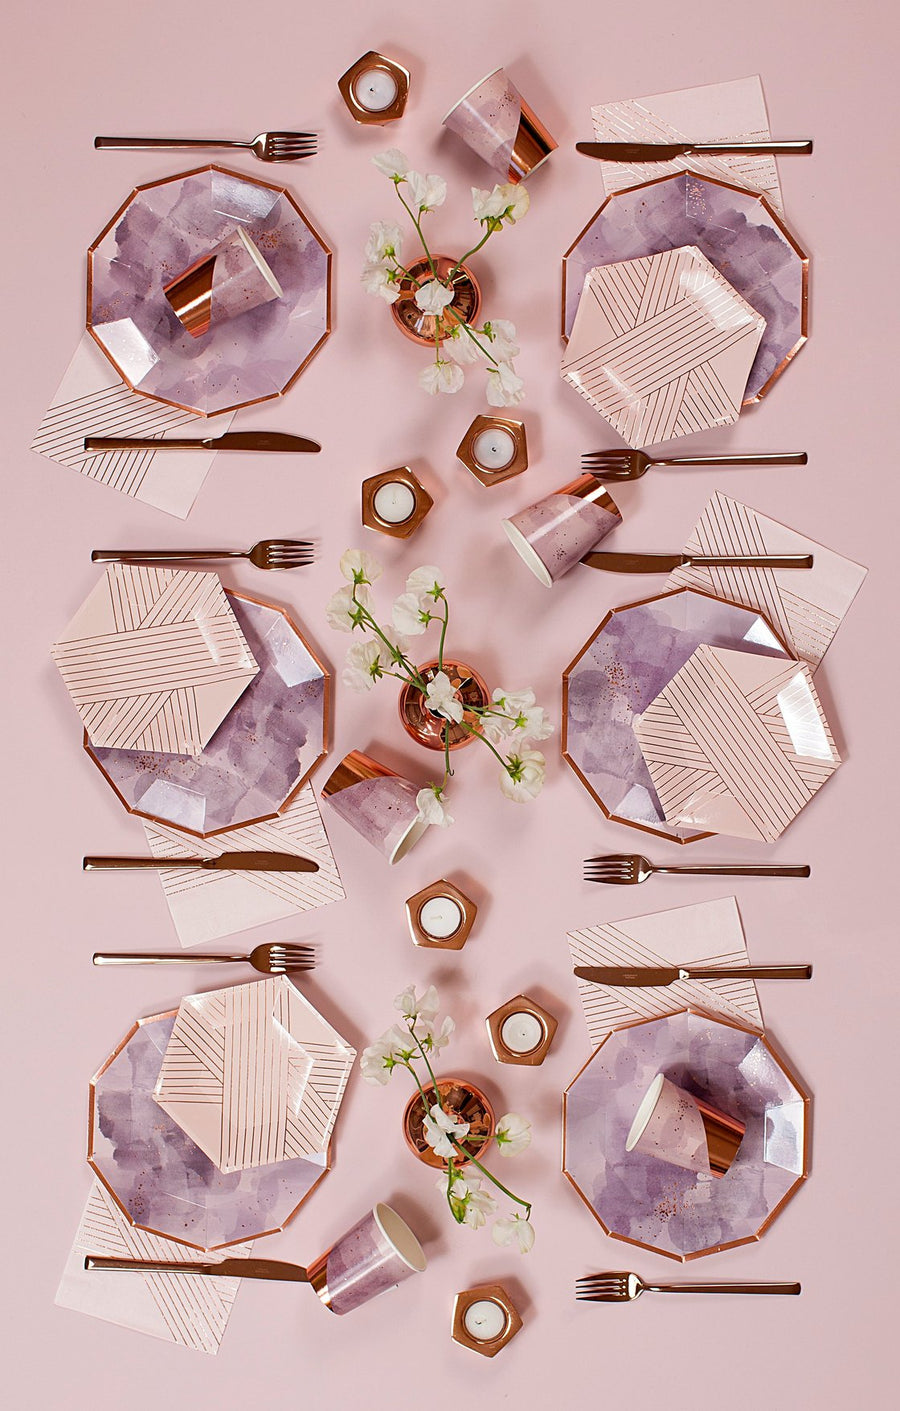 Pale Pink Striped Small Plates